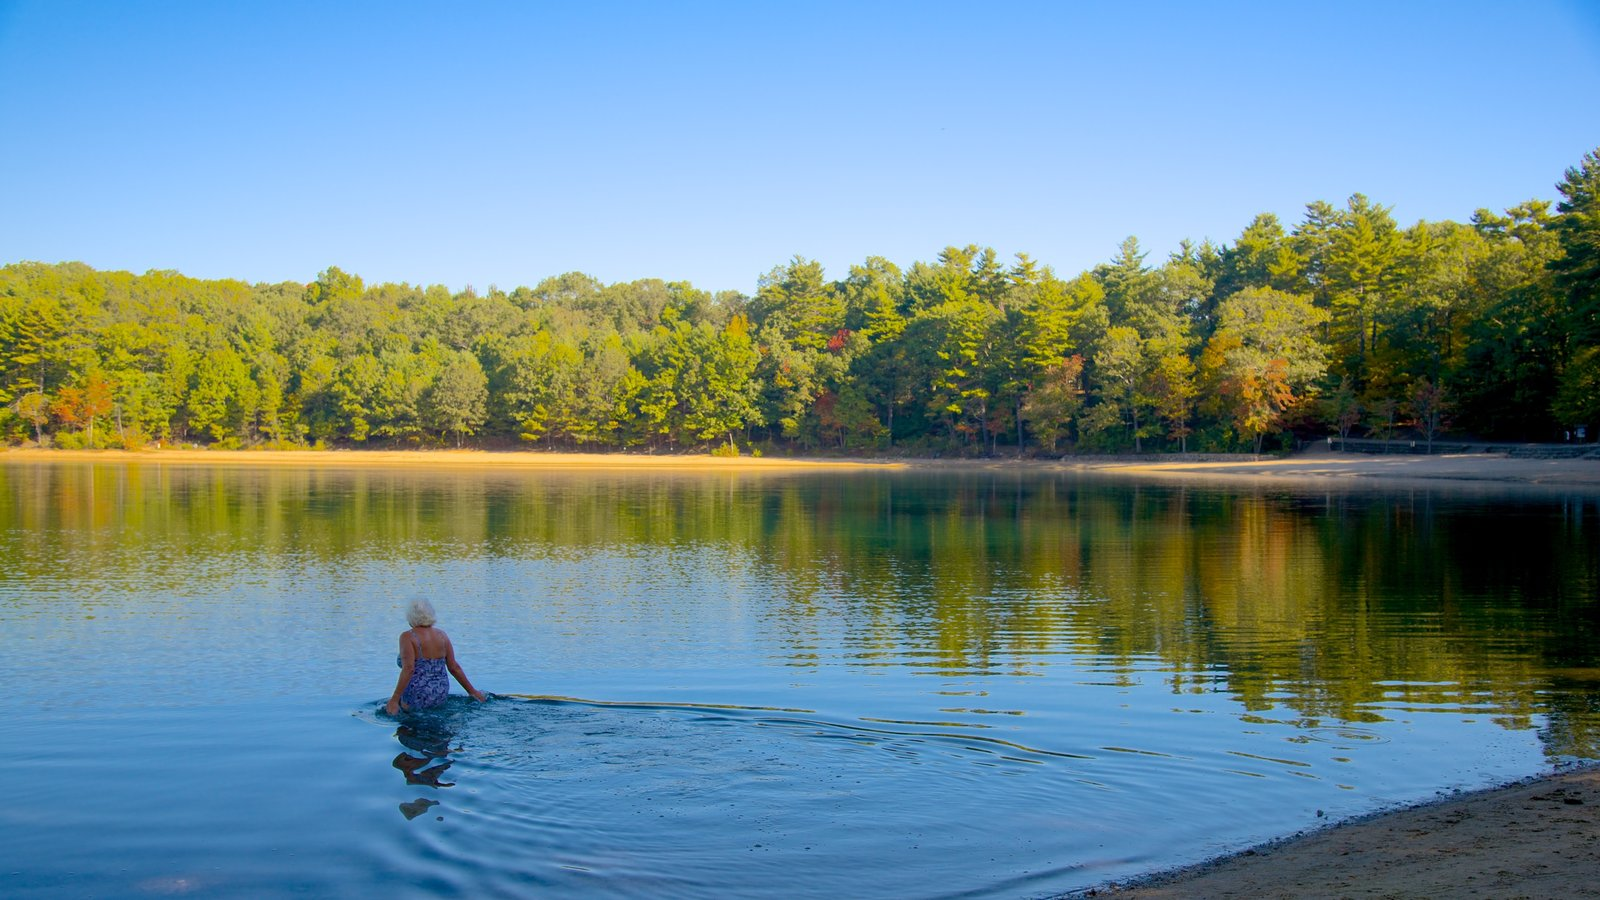 Walden Pond showing landscape views and a lake or waterhole as well as an individual femail